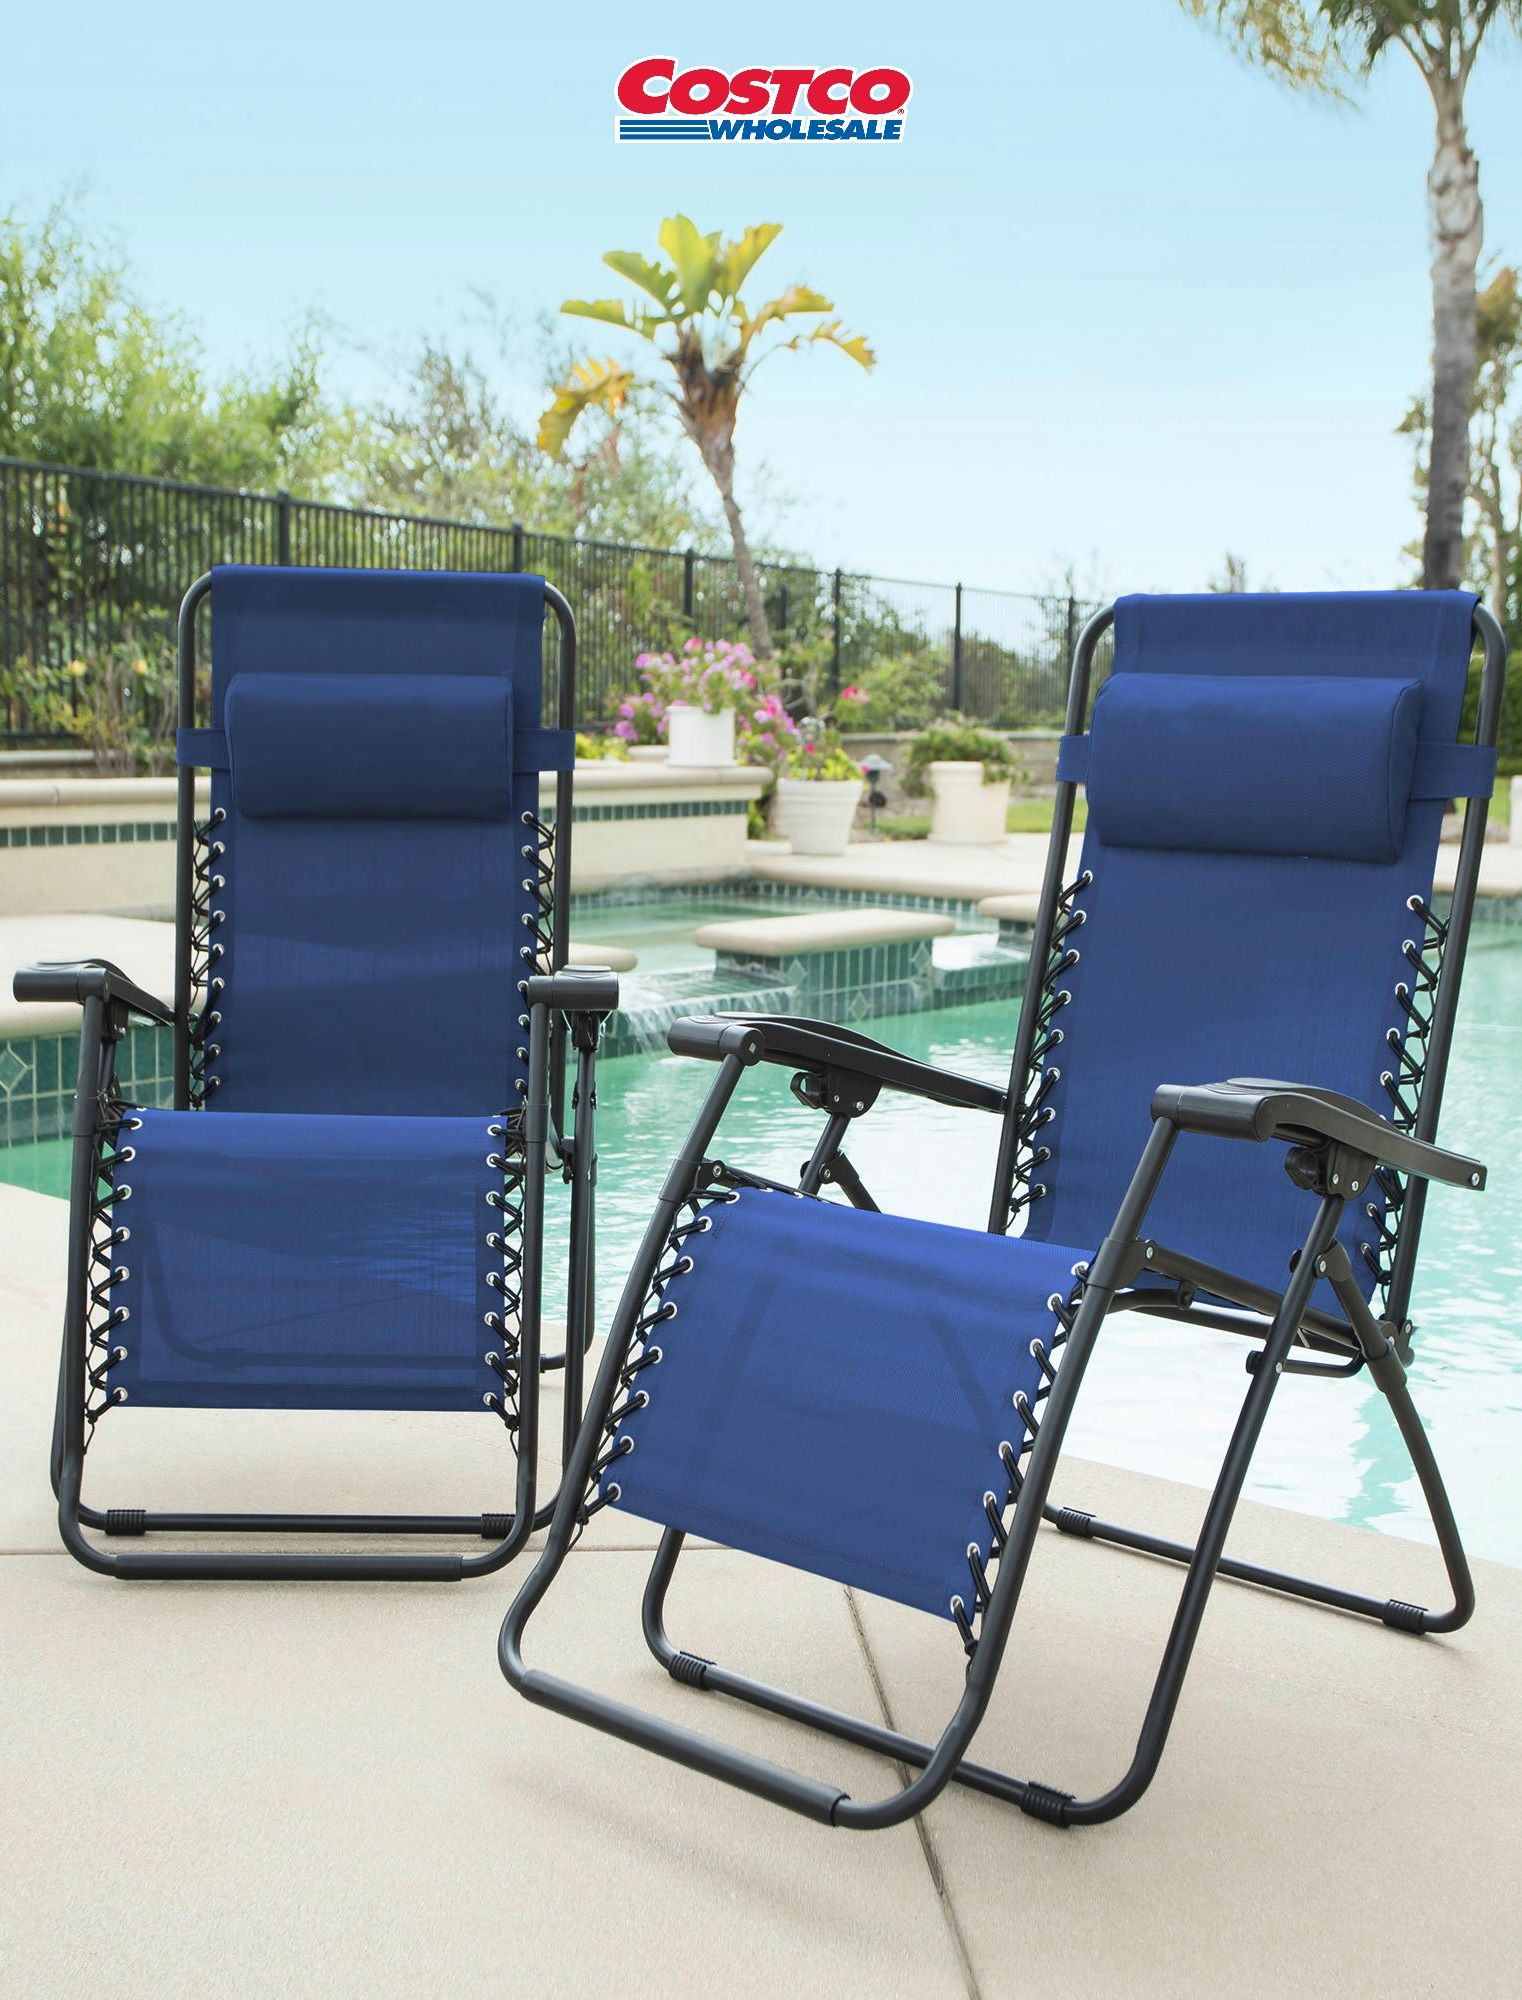 6 Chair Patio Set Cover: Exterior Porch Chair New 30